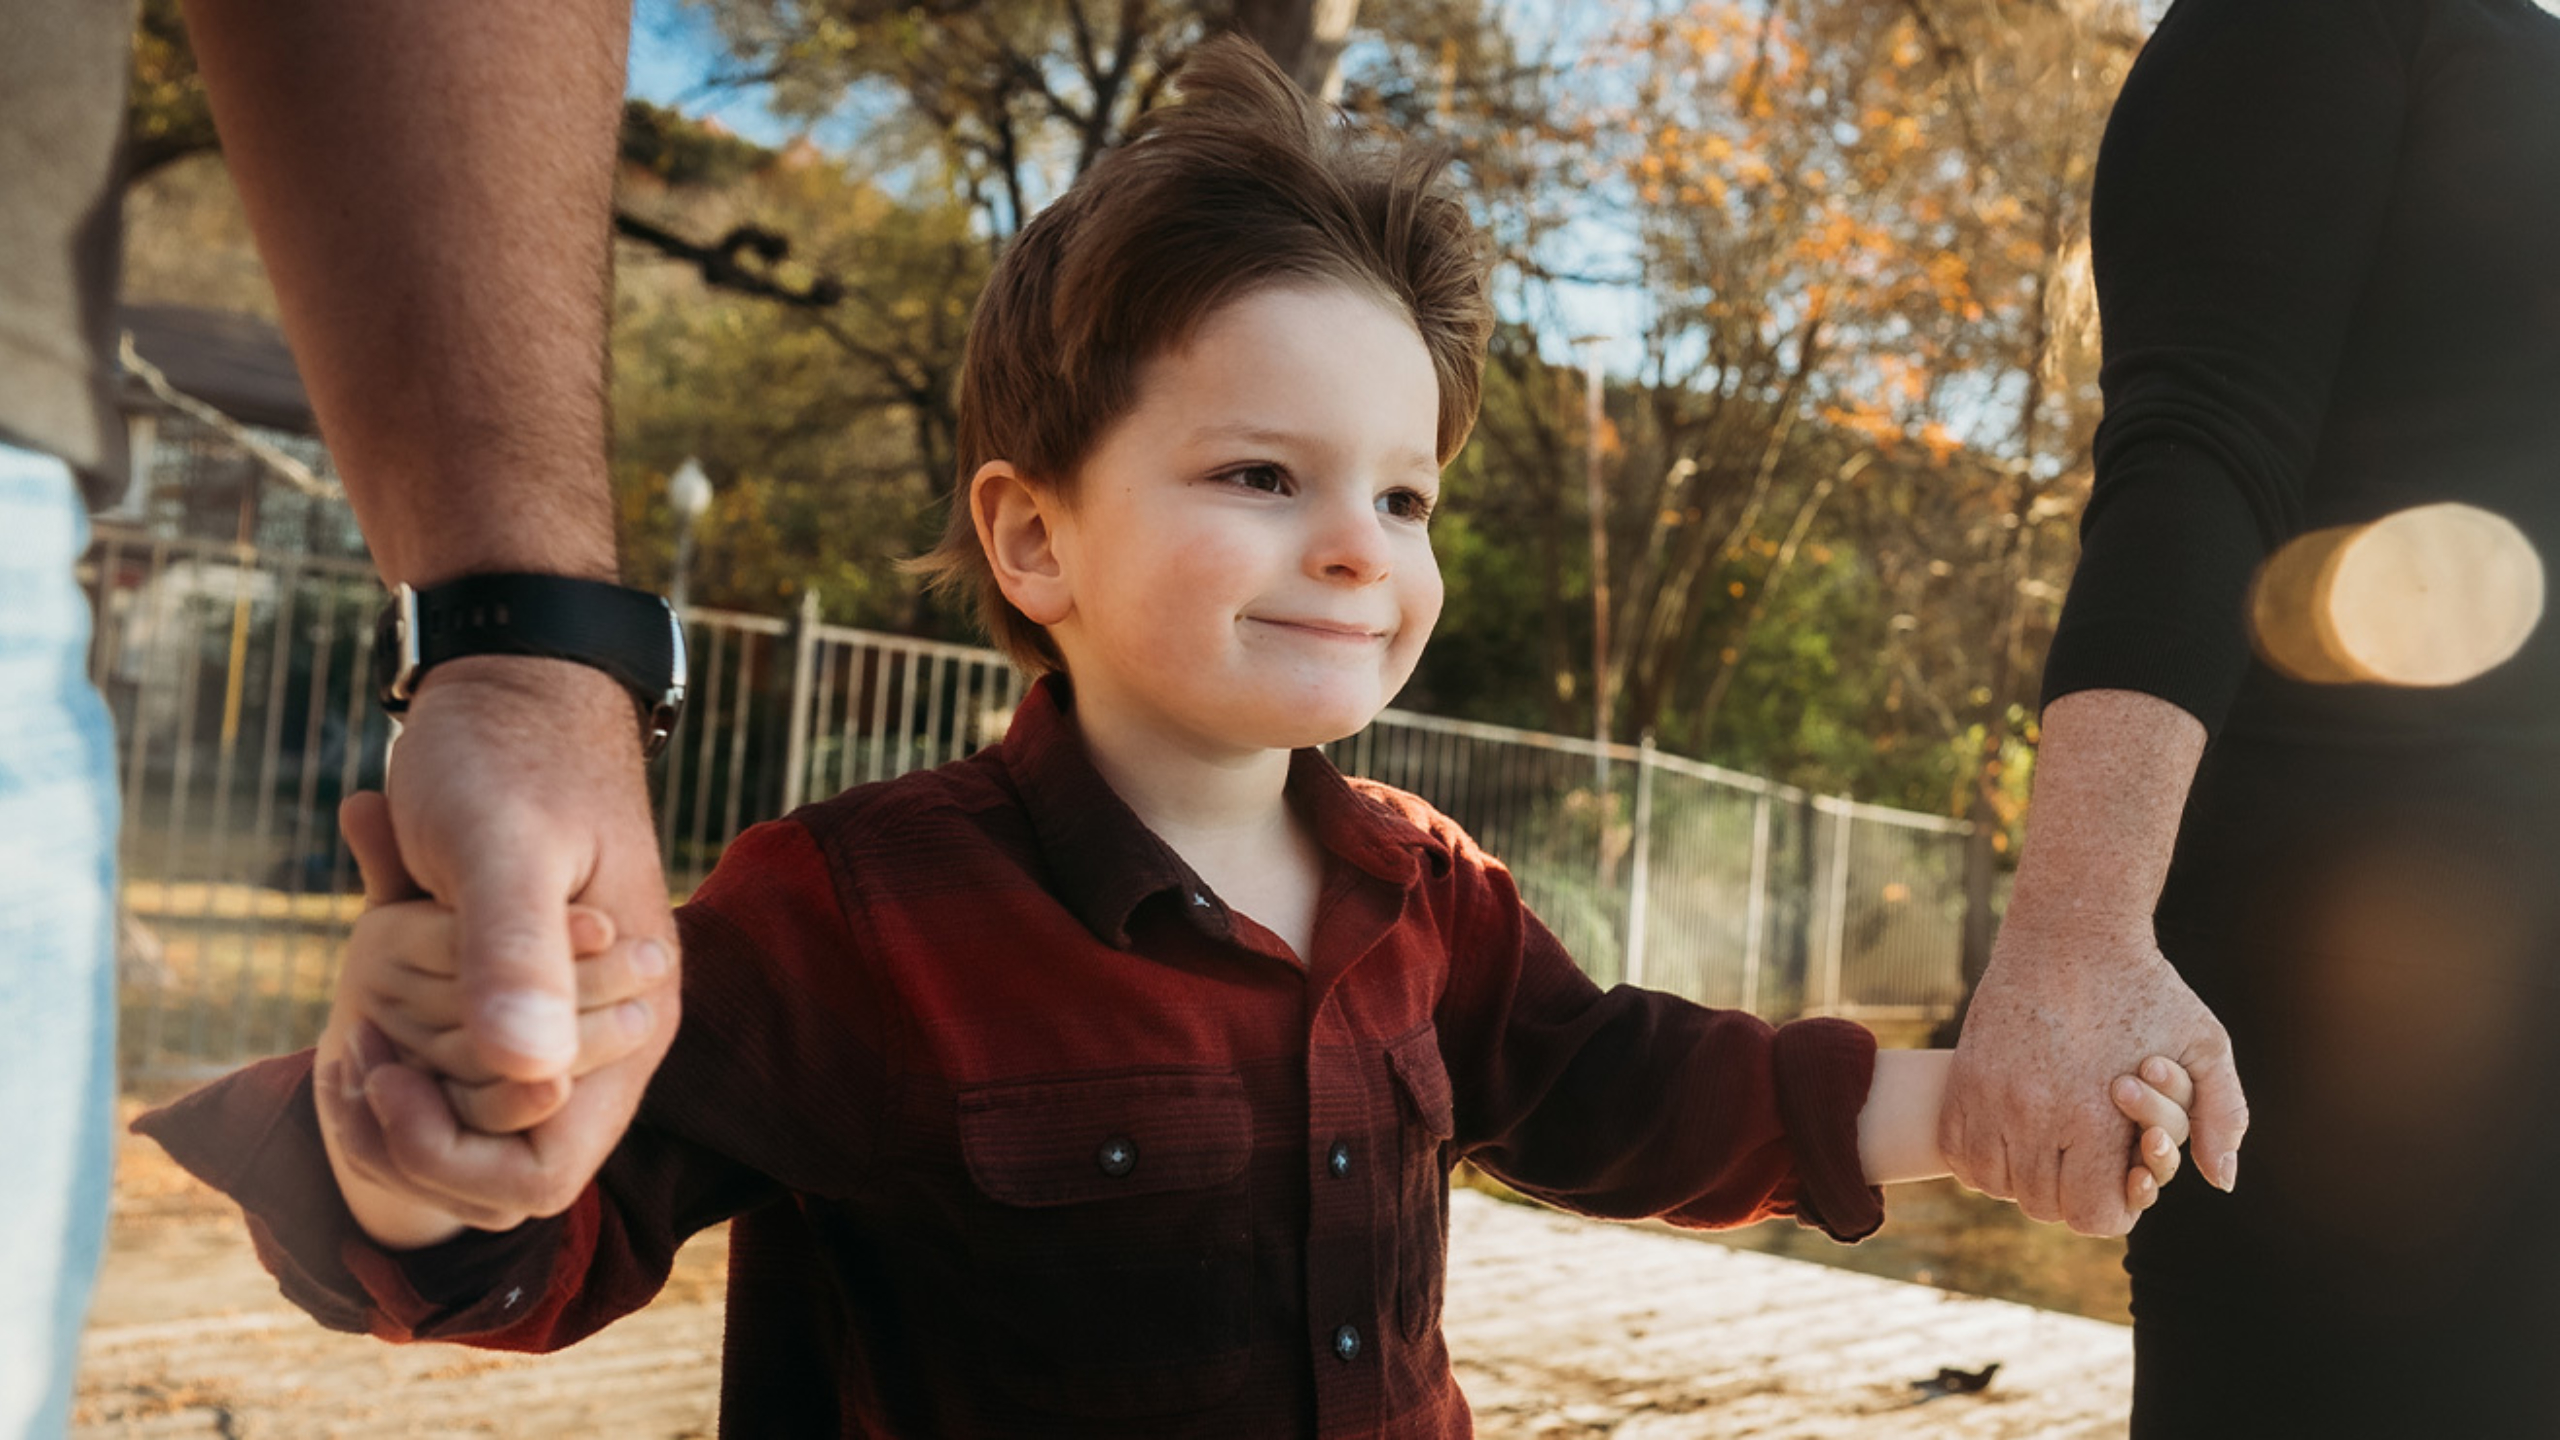 4-year-old boy (Levi Reeves) holding his parents hands during walk.